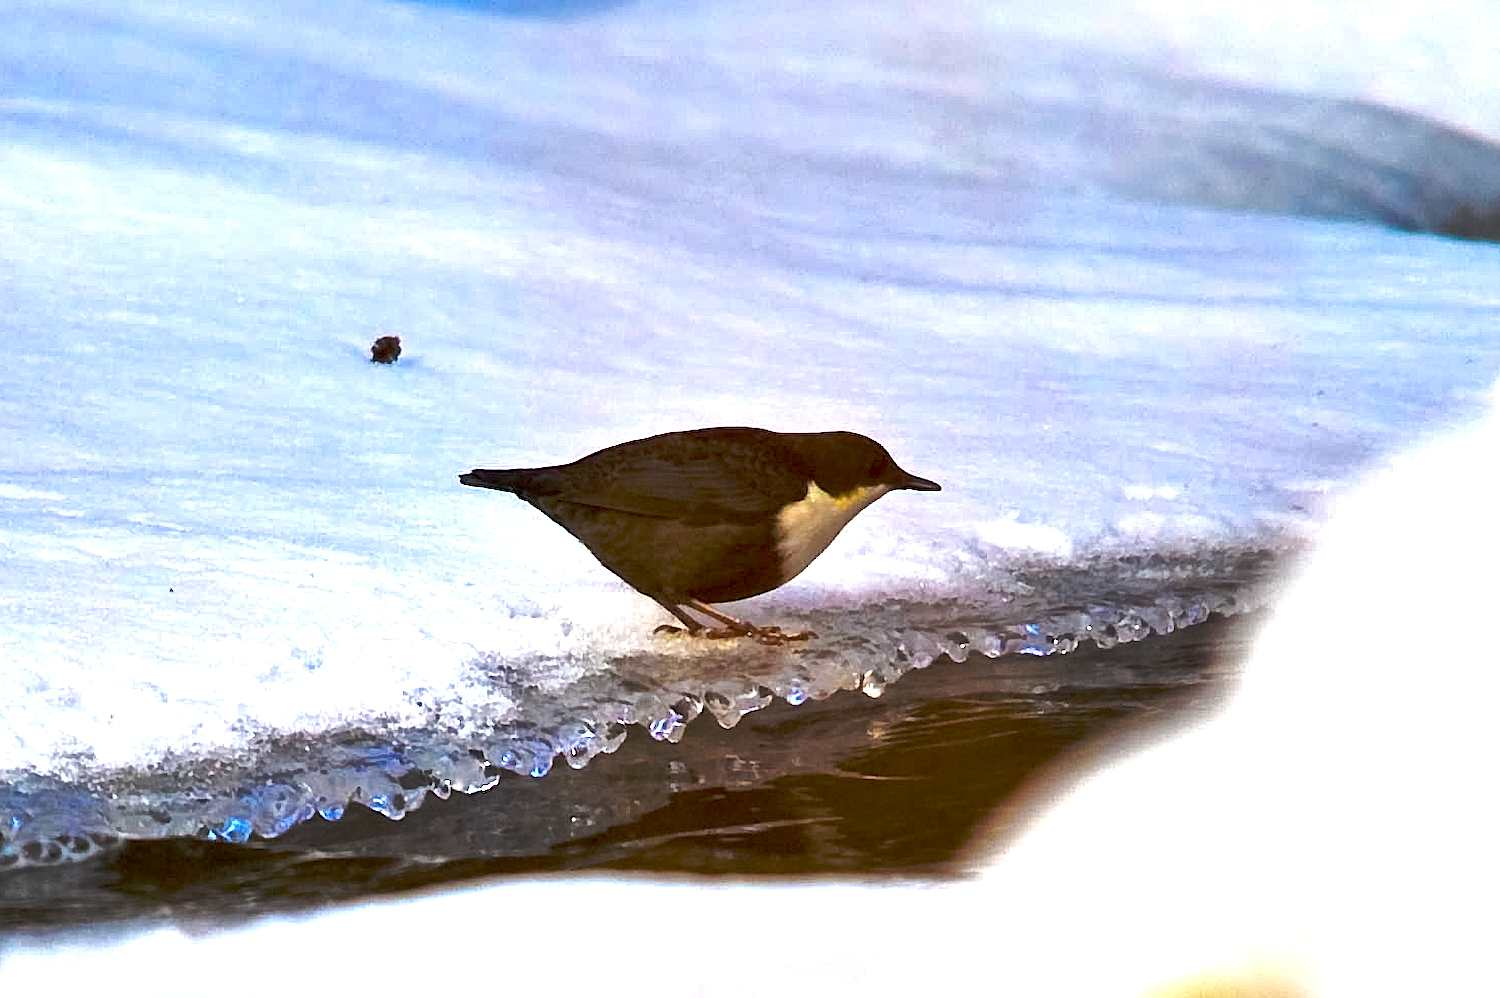 dipper watching for a pray author soini hannu